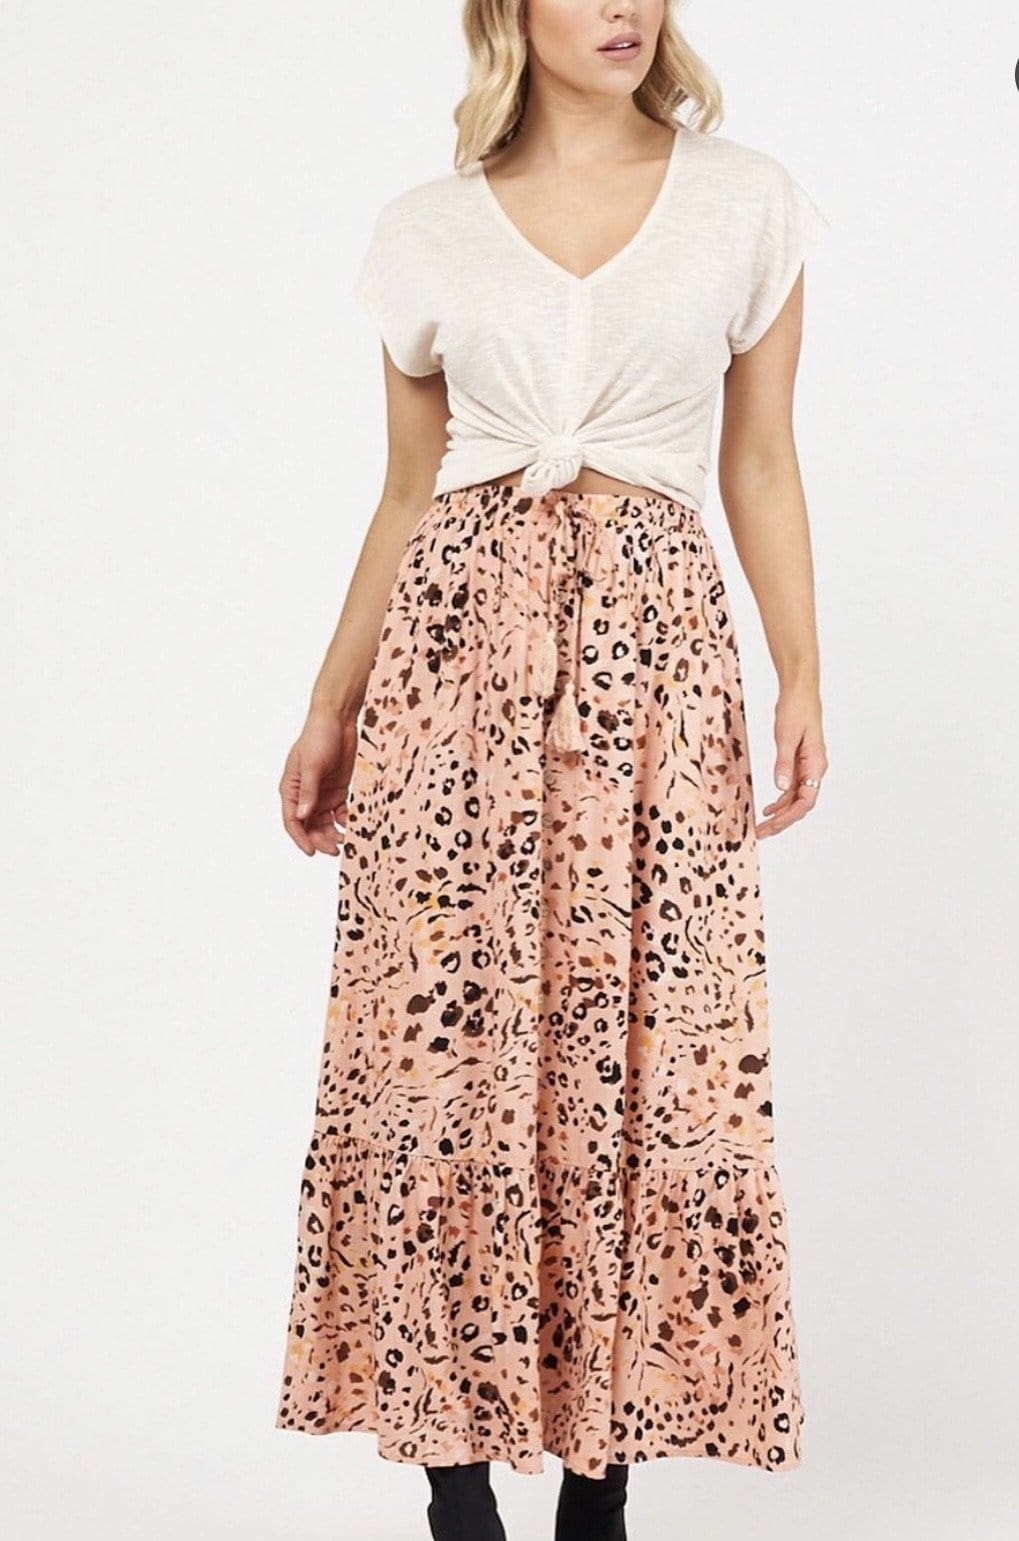 White Closet Peach Nara Maxi Skirt